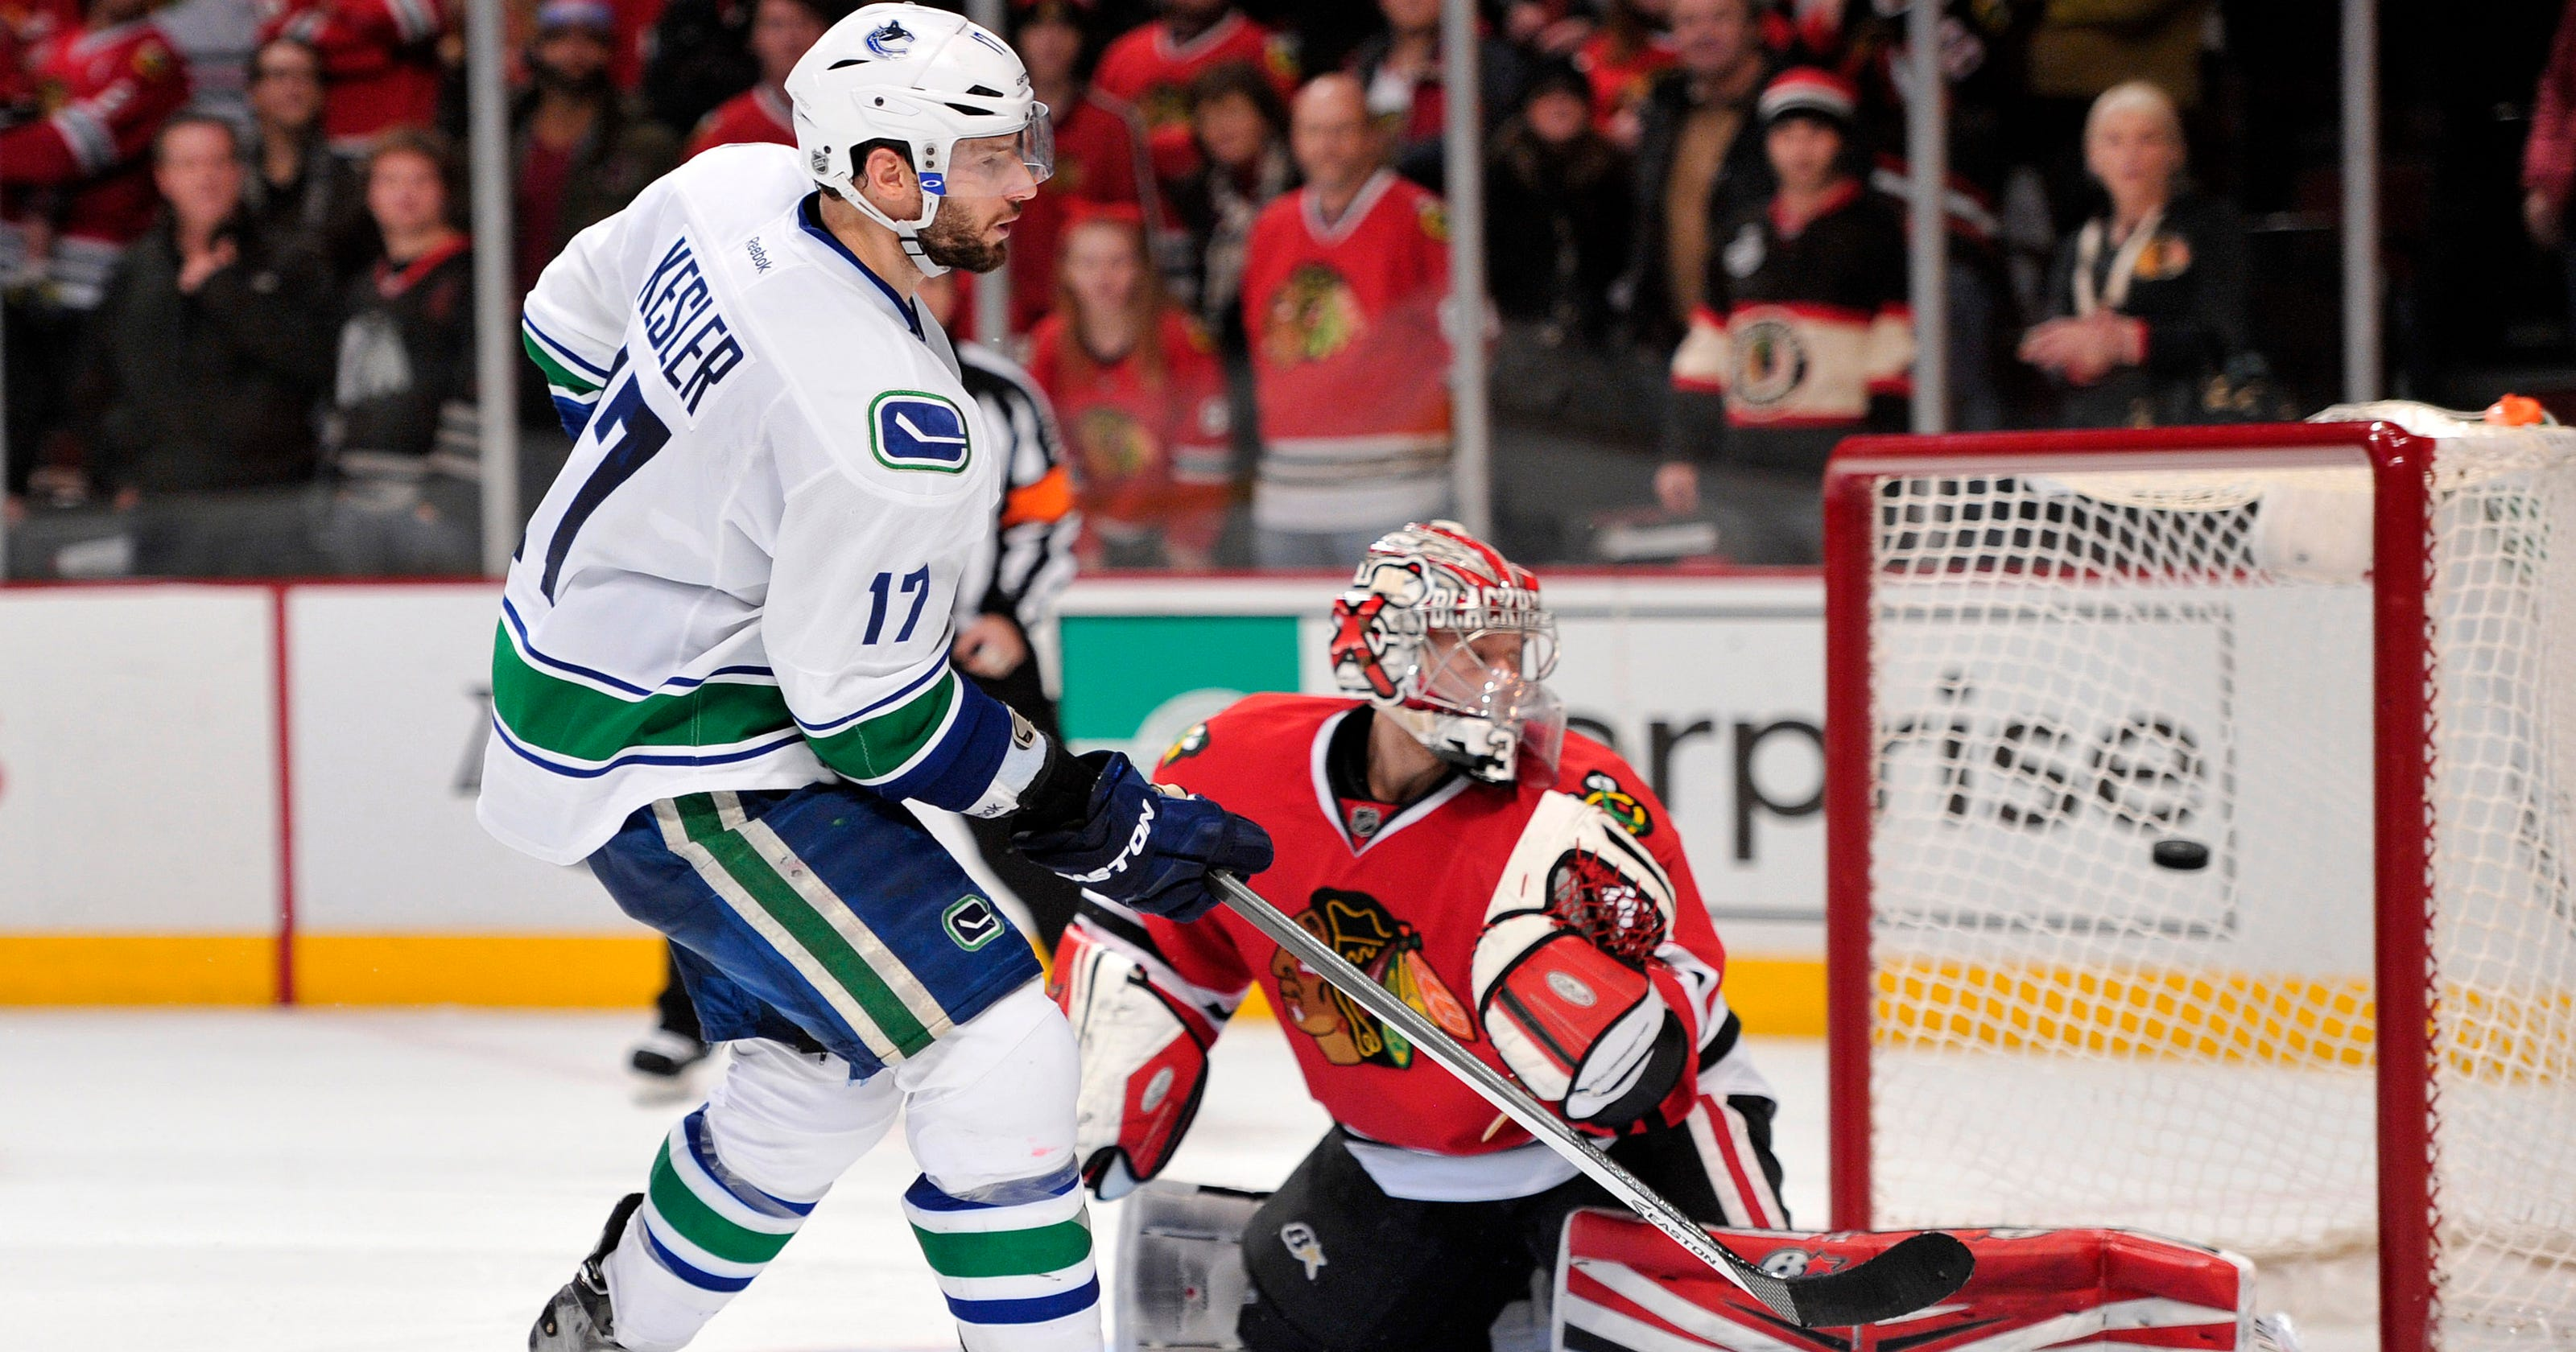 43a35c46481 Ryan Kesler lifts Canucks past Blackhawks in shootout